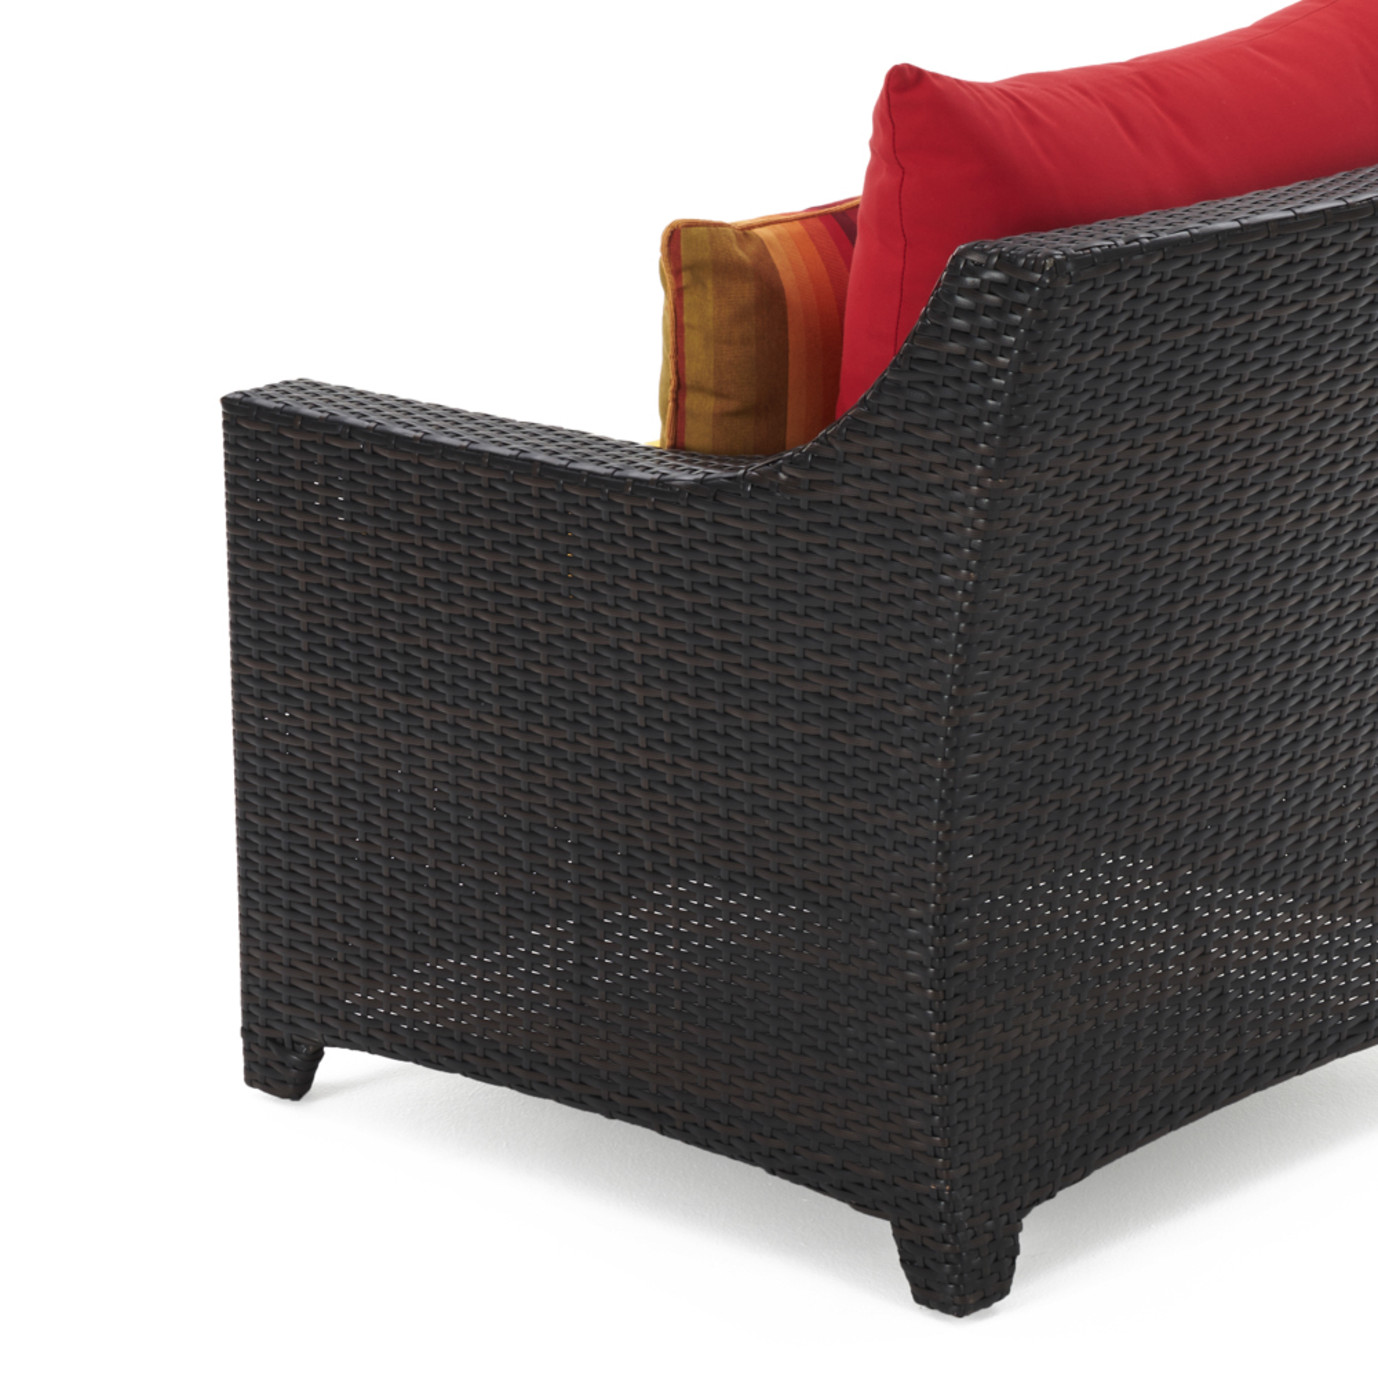 Deco™ Loveseat & Ottoman - Sunset Red